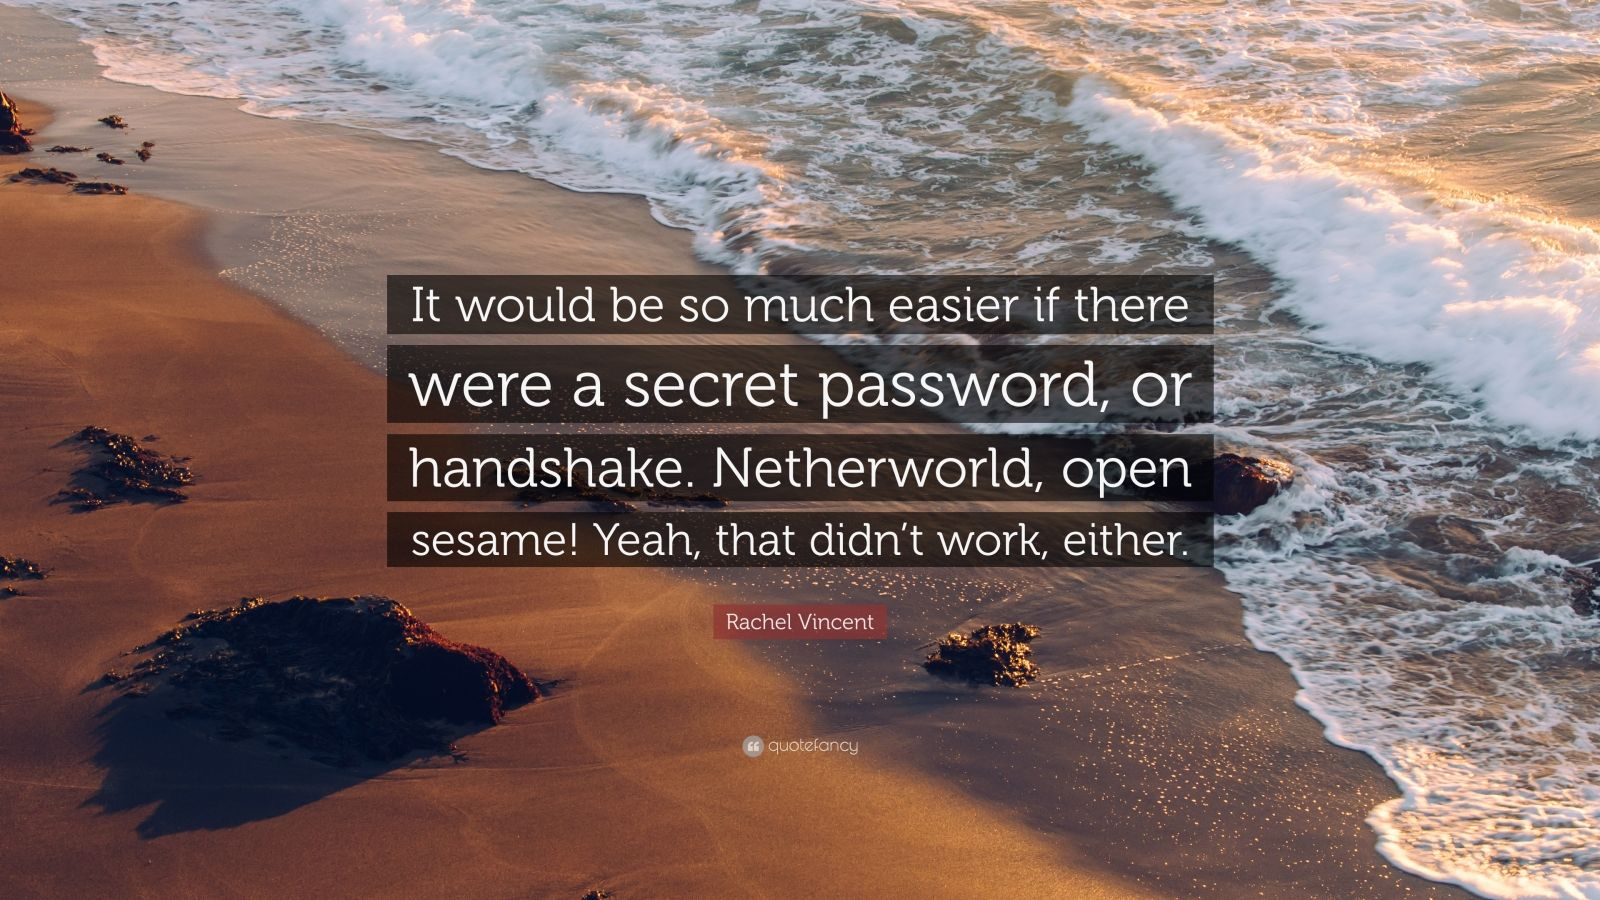 """Rachel Vincent Quote: """"It would be so much easier if there were a secret password, or handshake. Netherworld, open sesame! Yeah, that didn't work, either."""""""